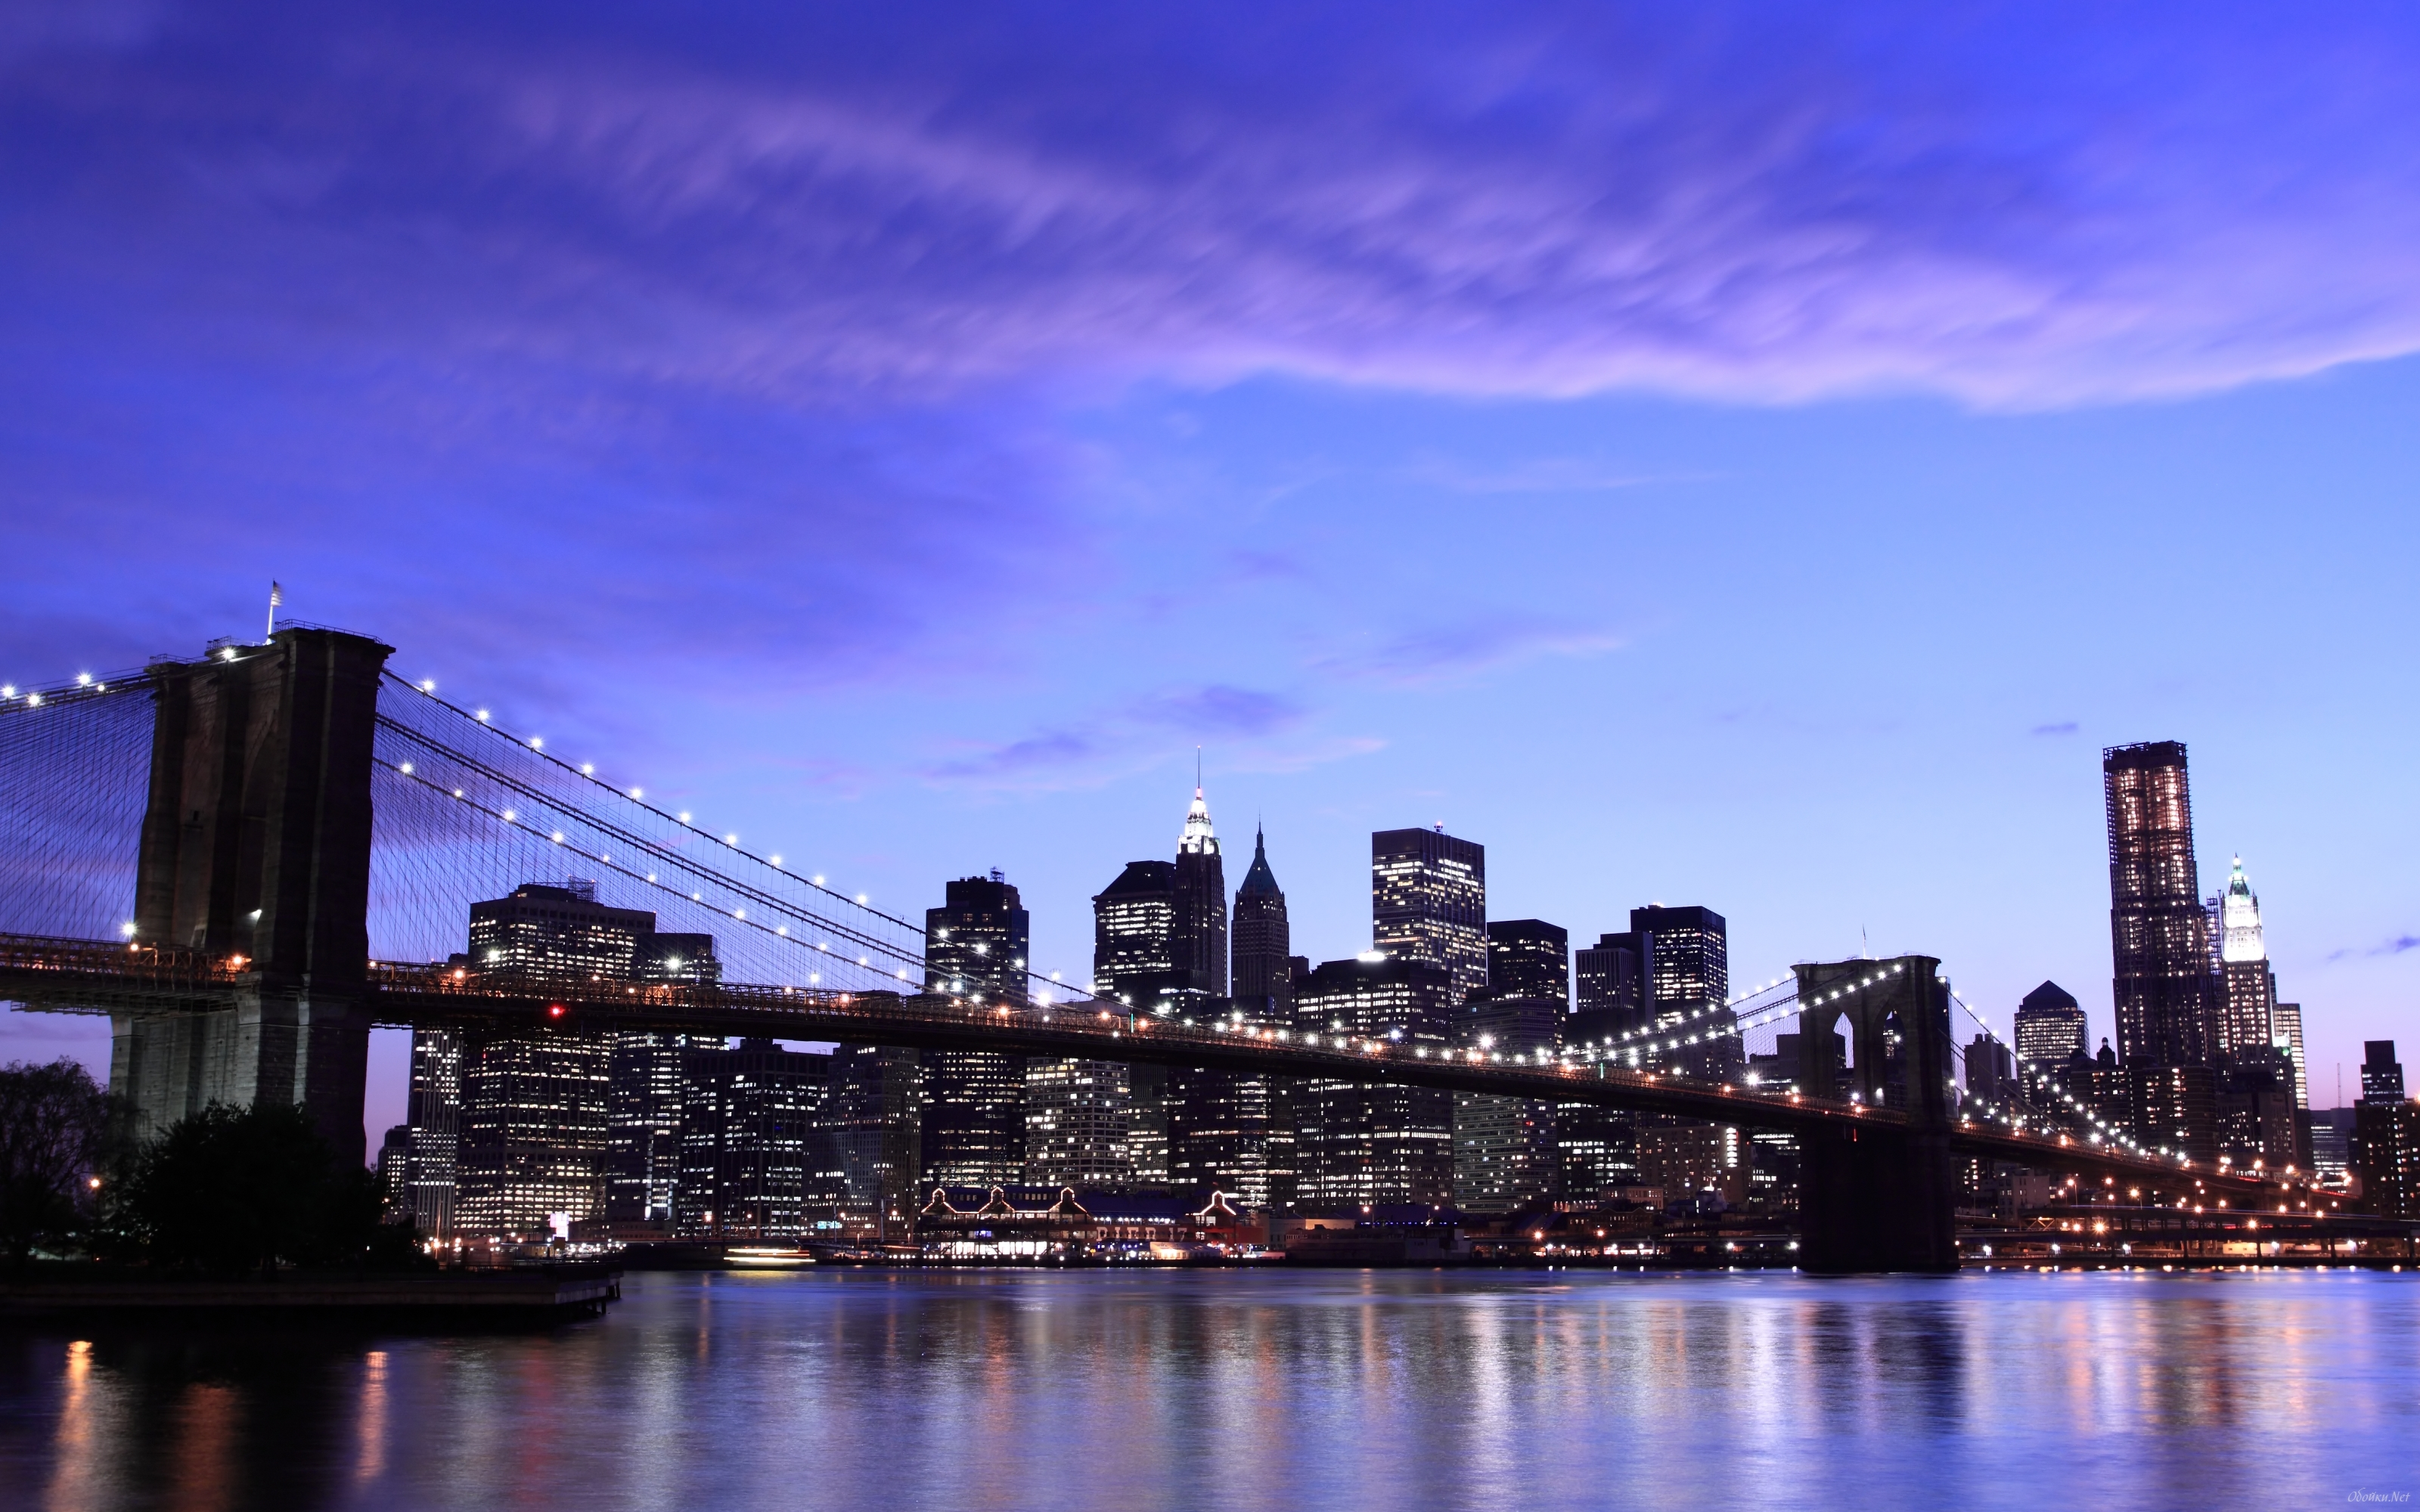 77 New York City Desktop Wallpaper On Wallpapersafari